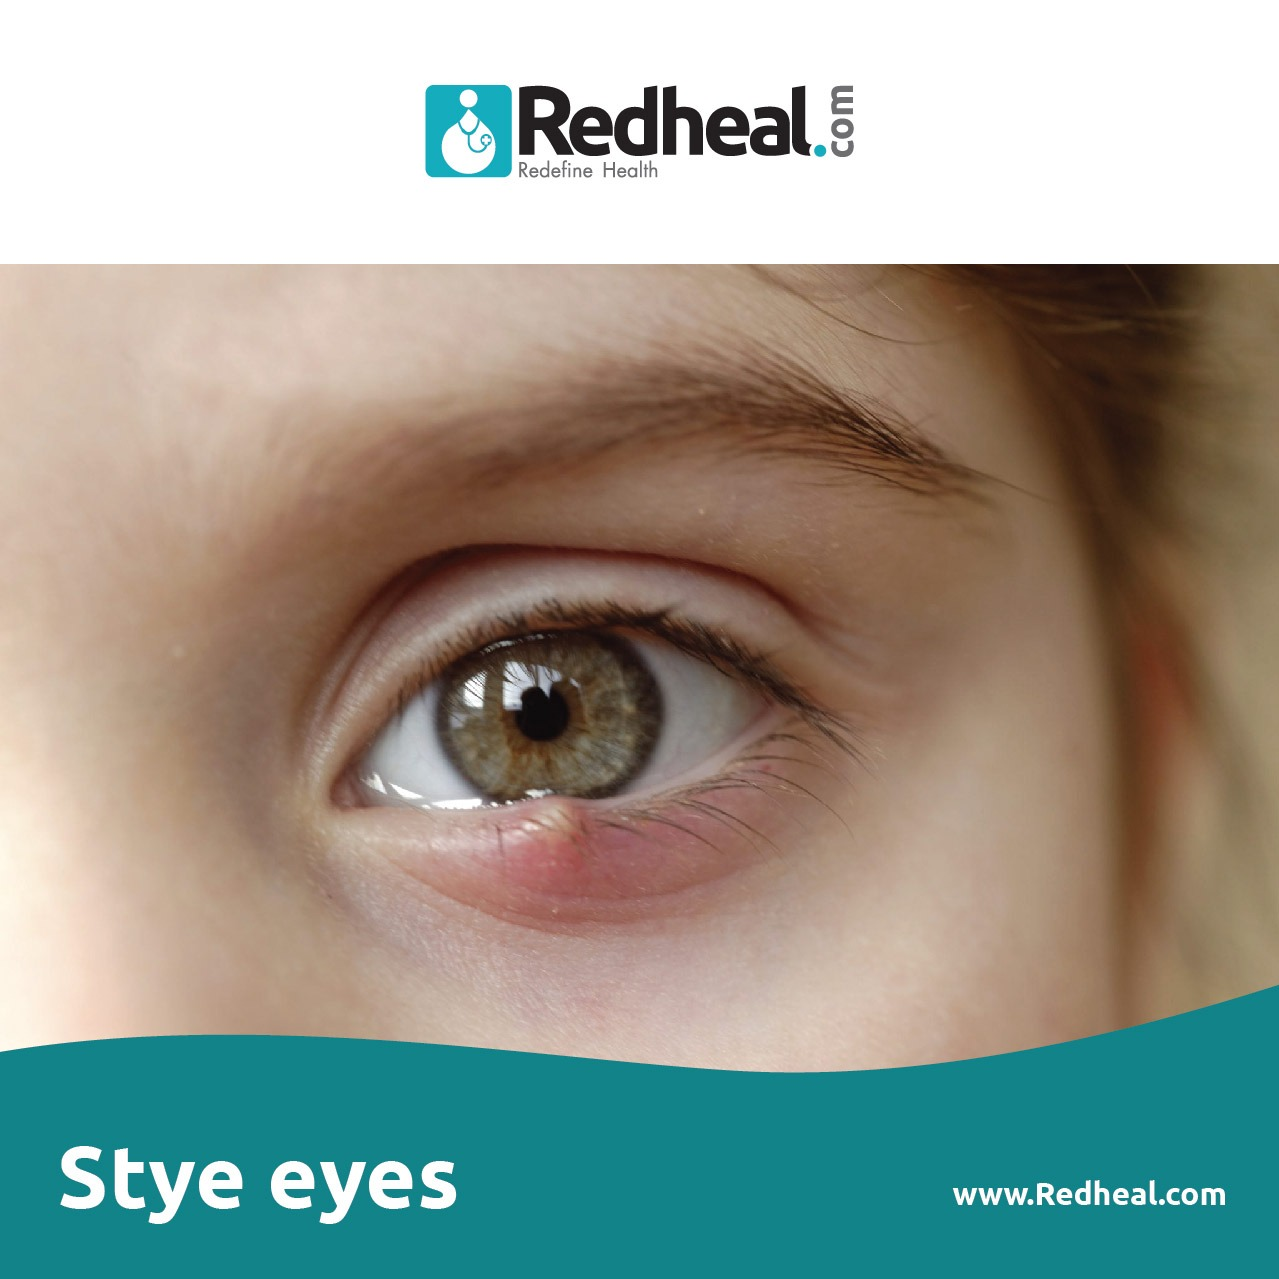 styeeyes symptoms and Treatment